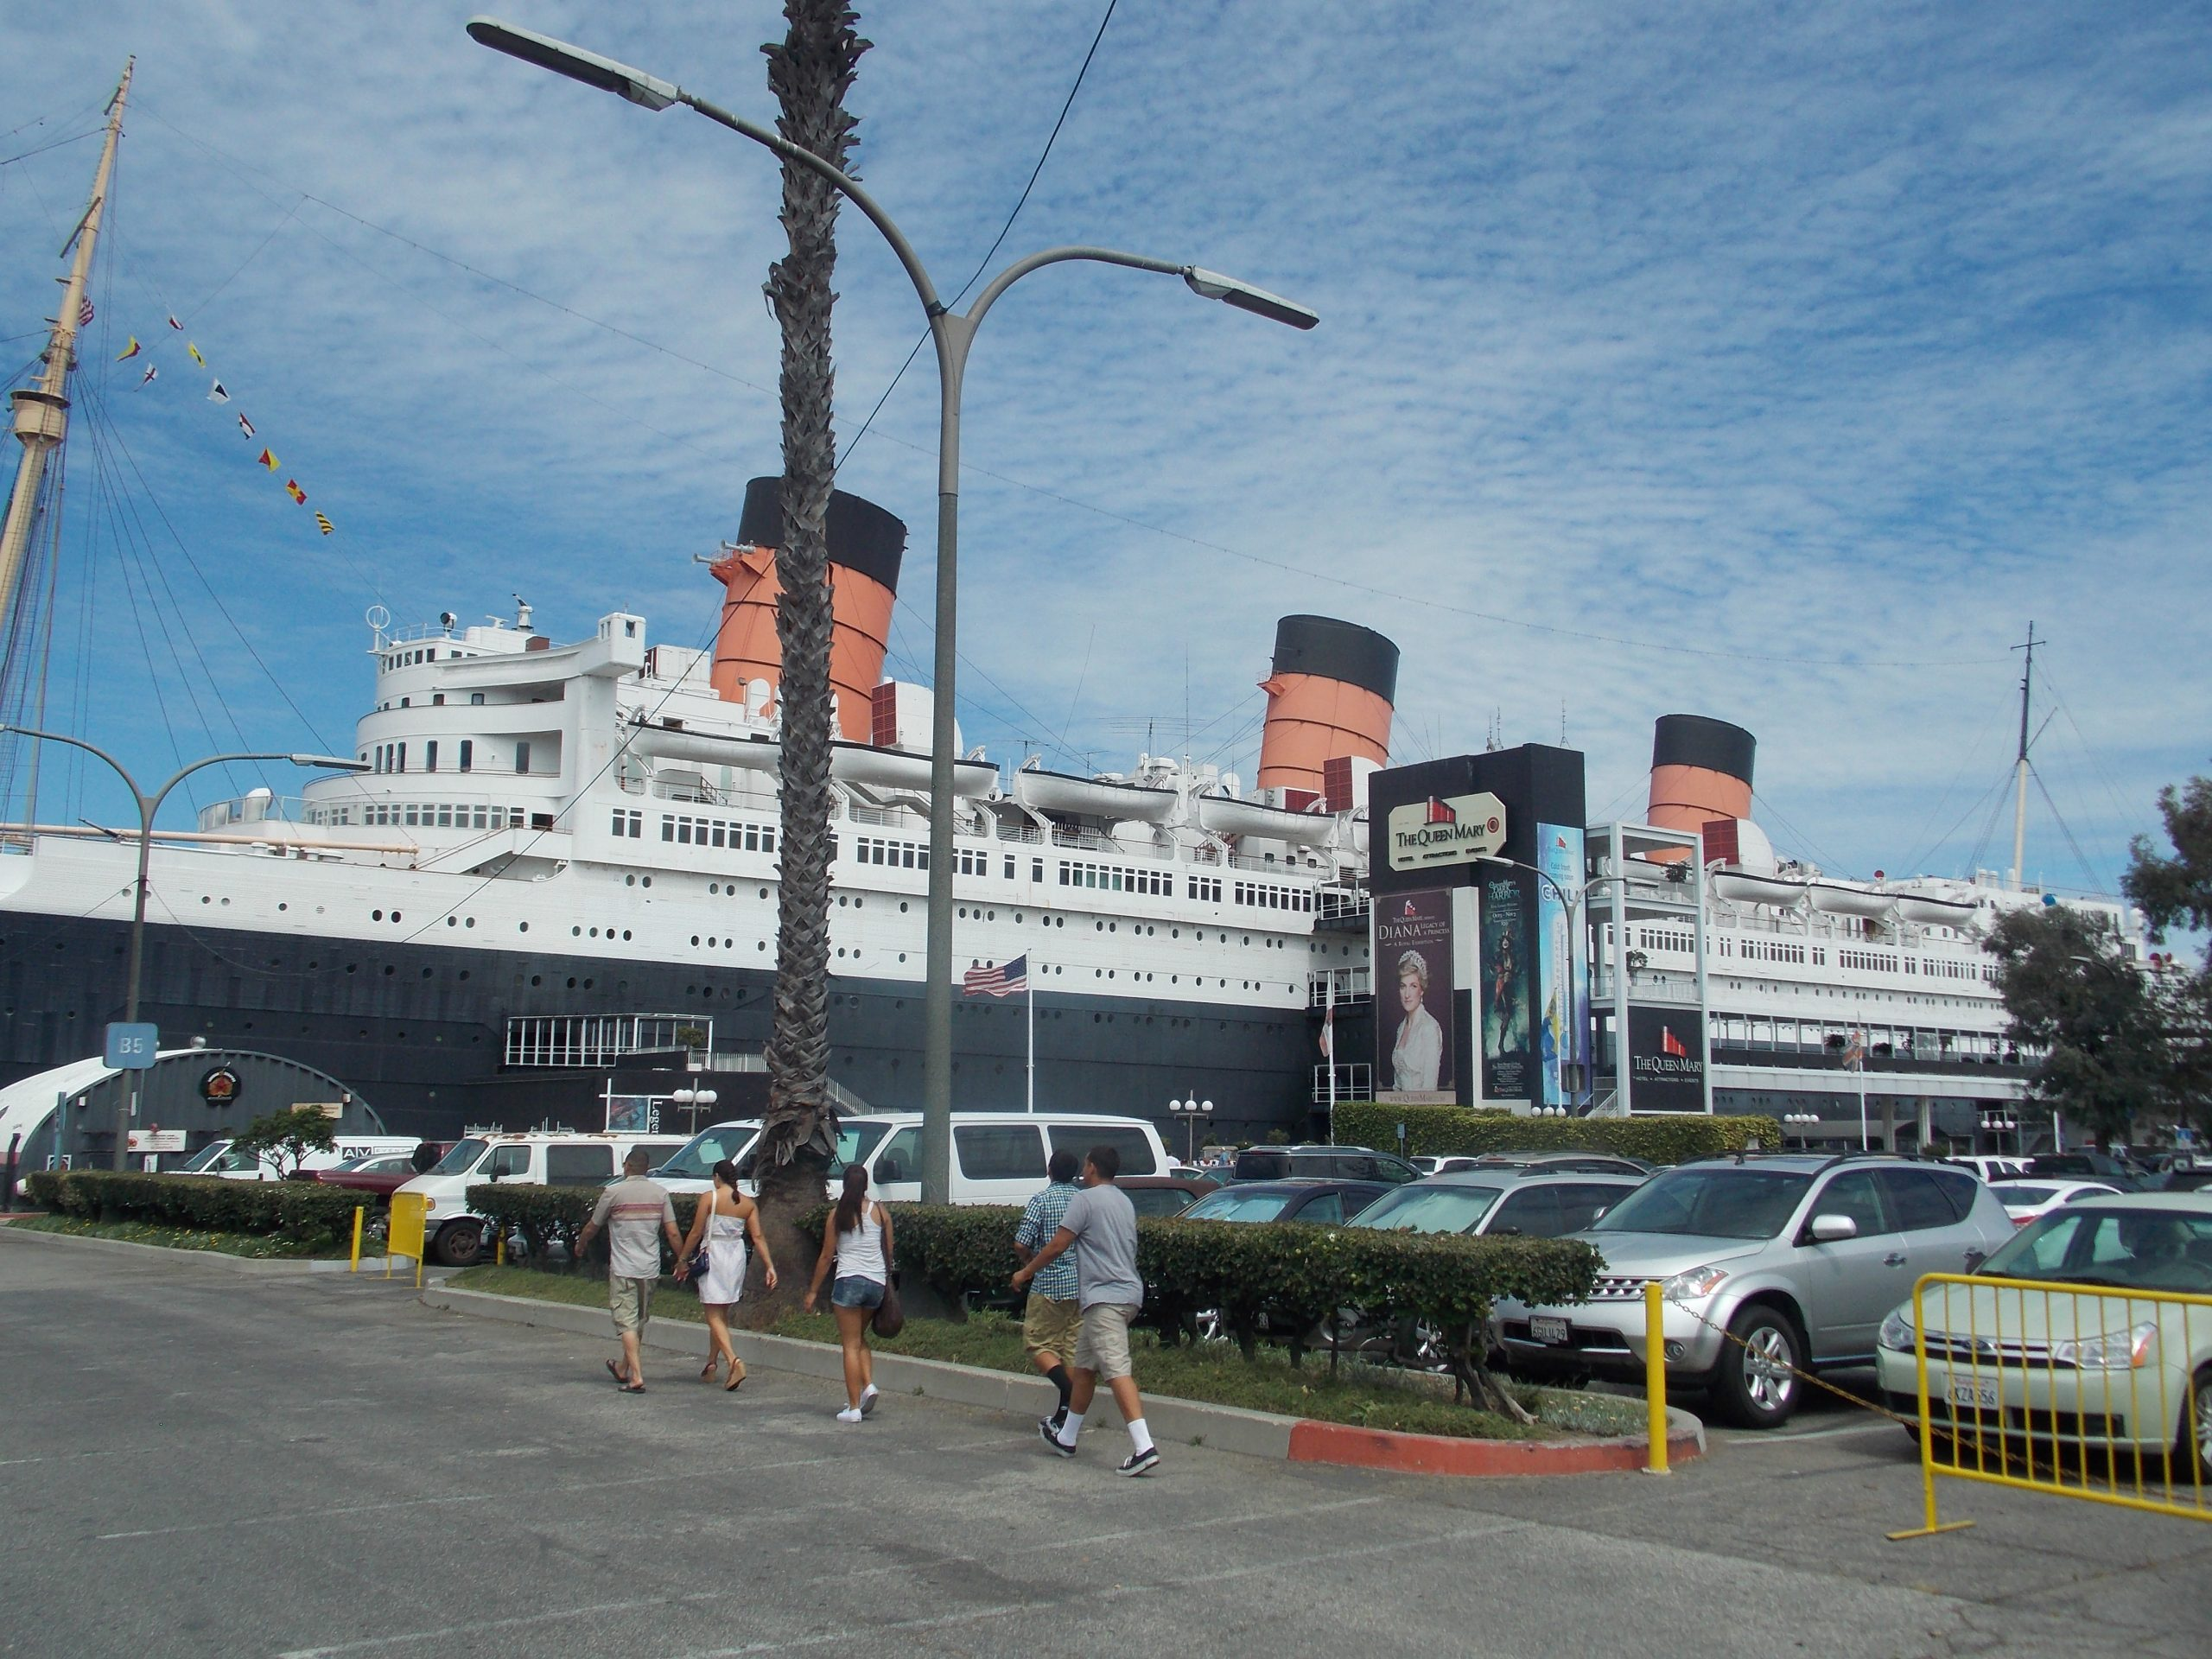 MAMA! I WANNA GO TO THE QUEEN MARY!!